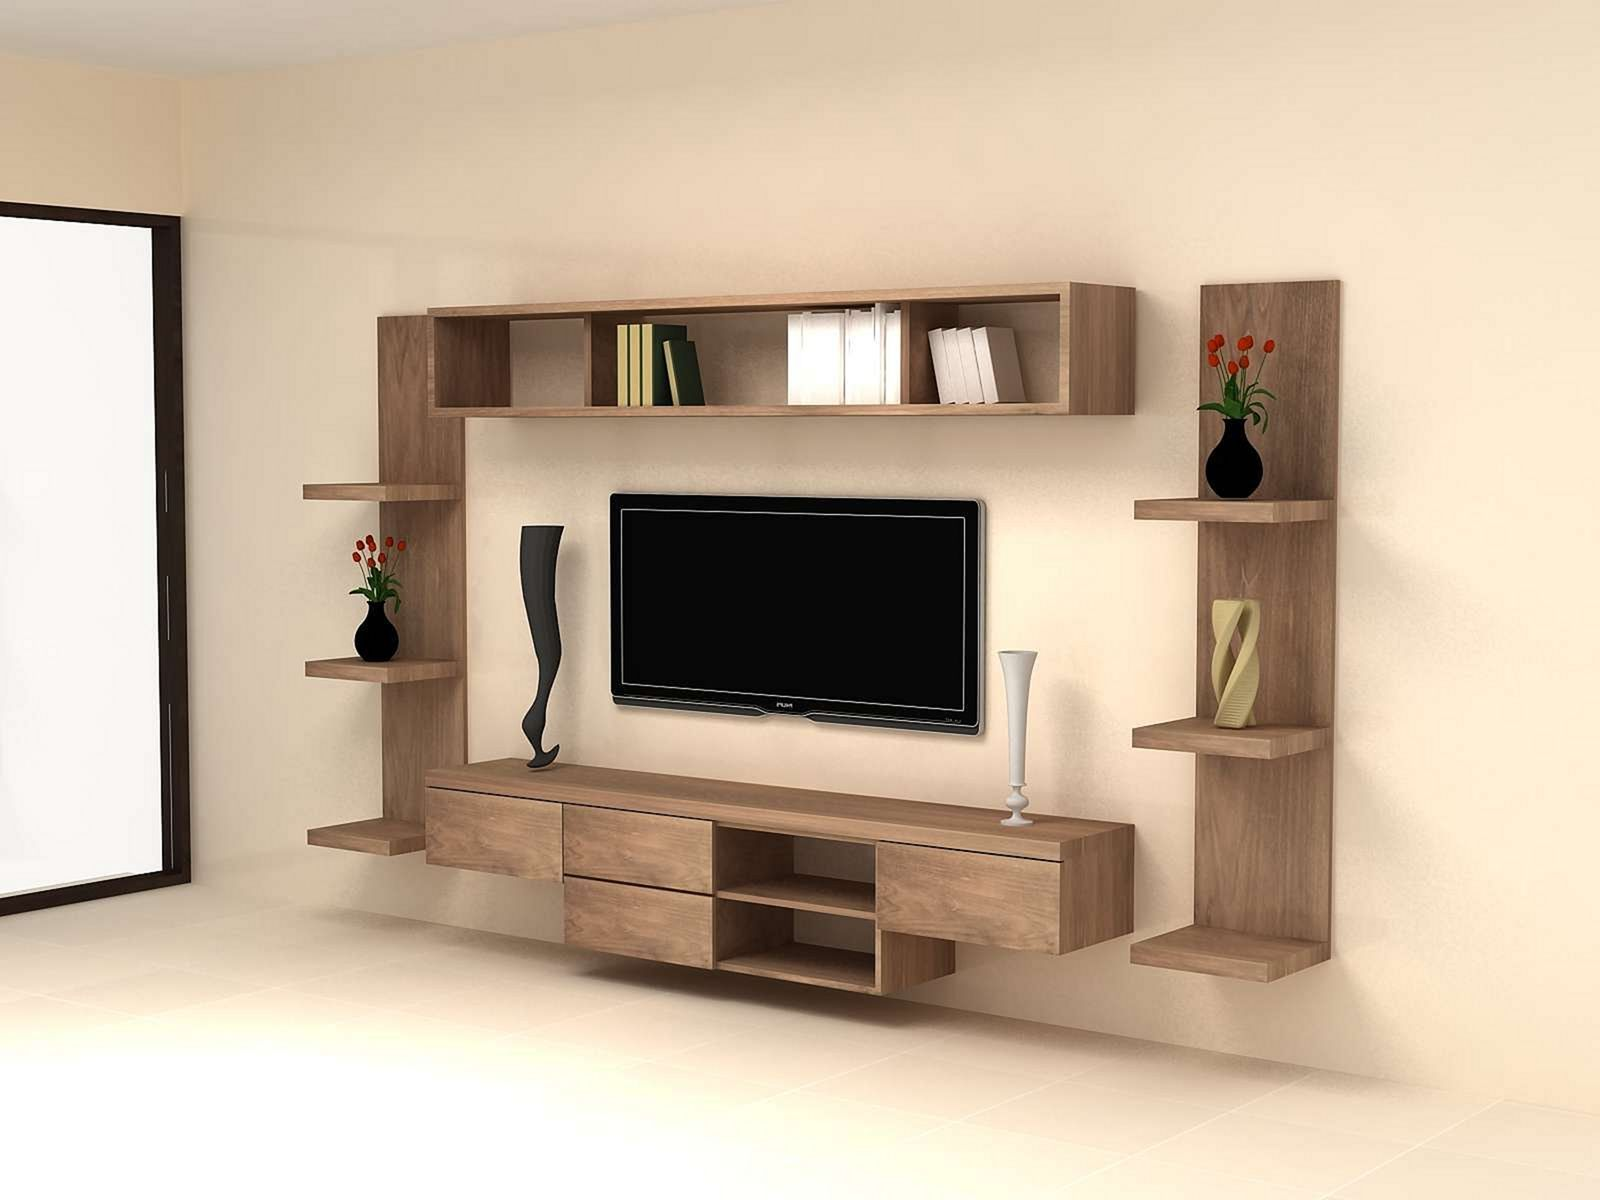 28 Amazing Modern TV Cabinets Design For Your Home ...